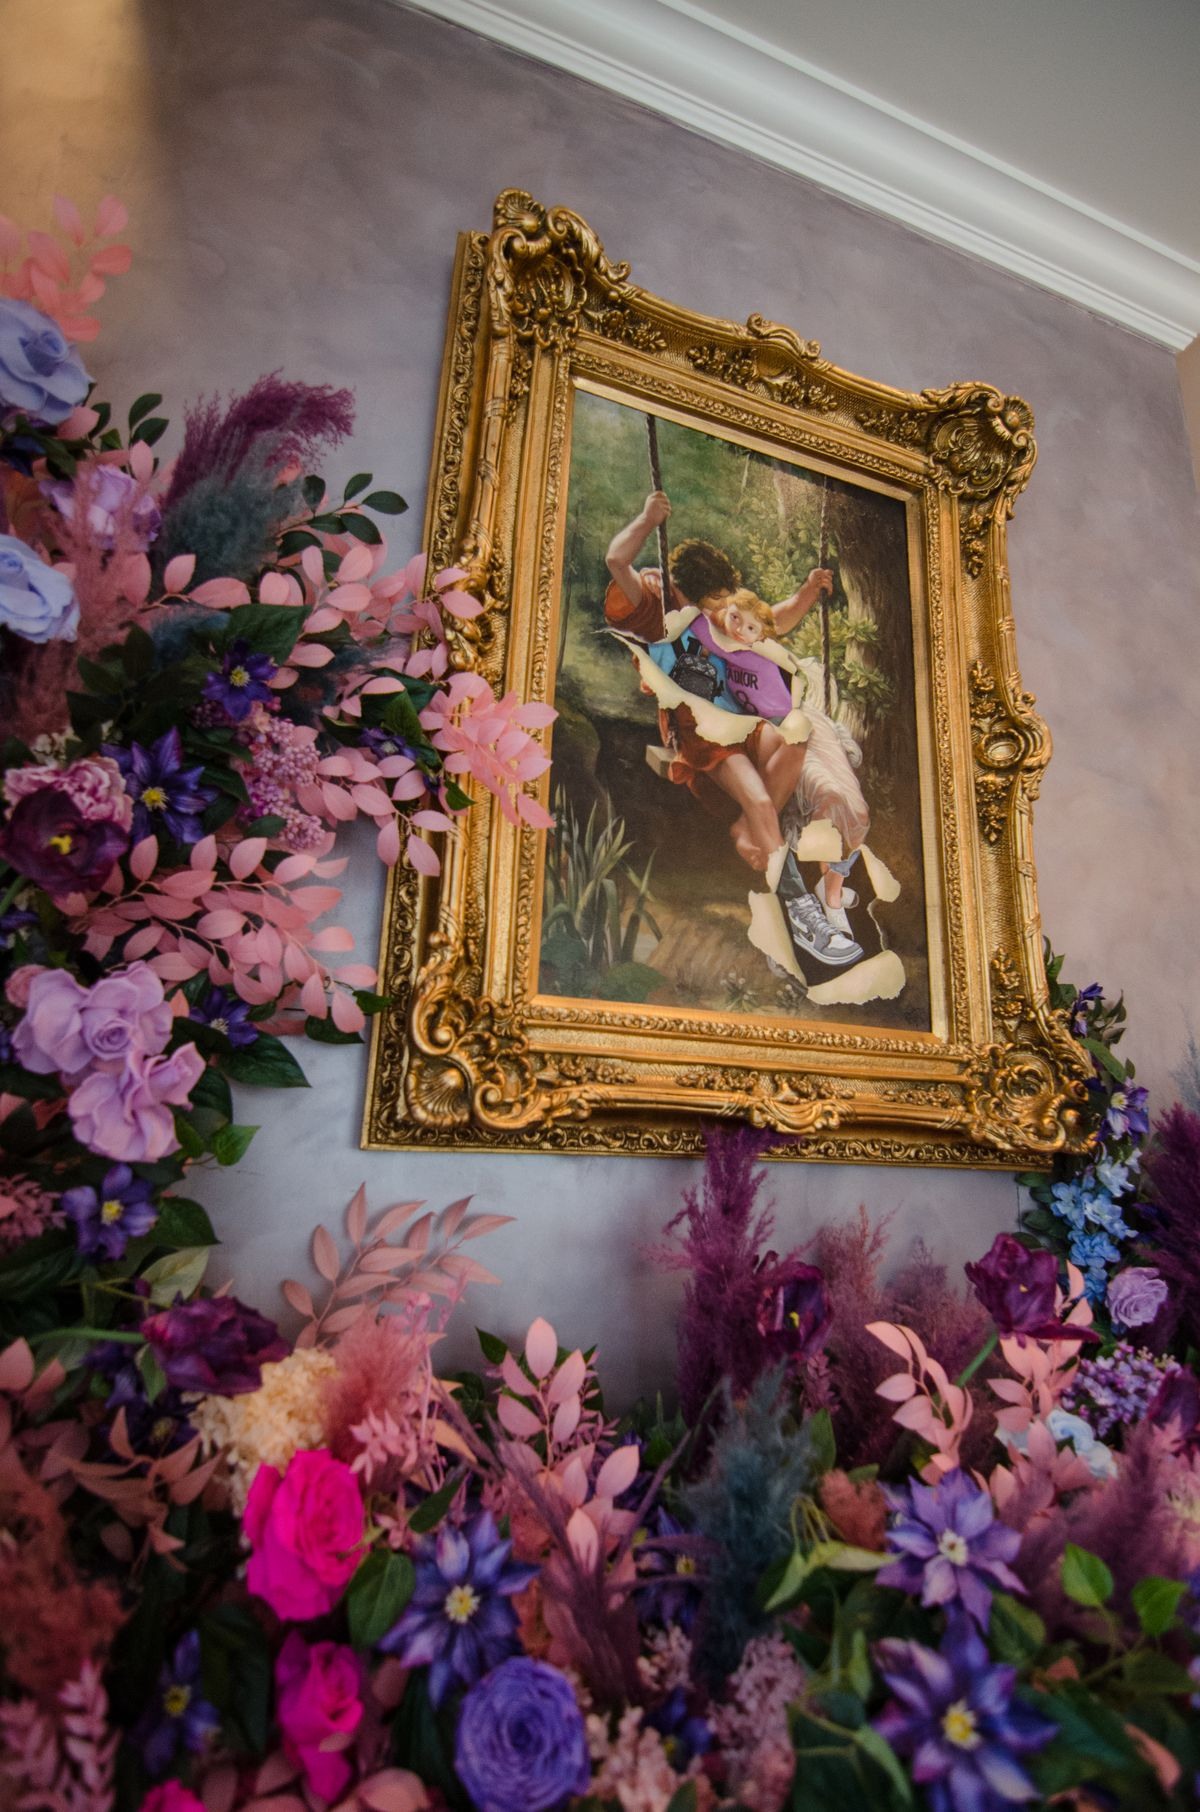 A renaissance-style painting with an elaborate gold frame is embellished with modern touches and surrounded by preserved pink and purple flowers.